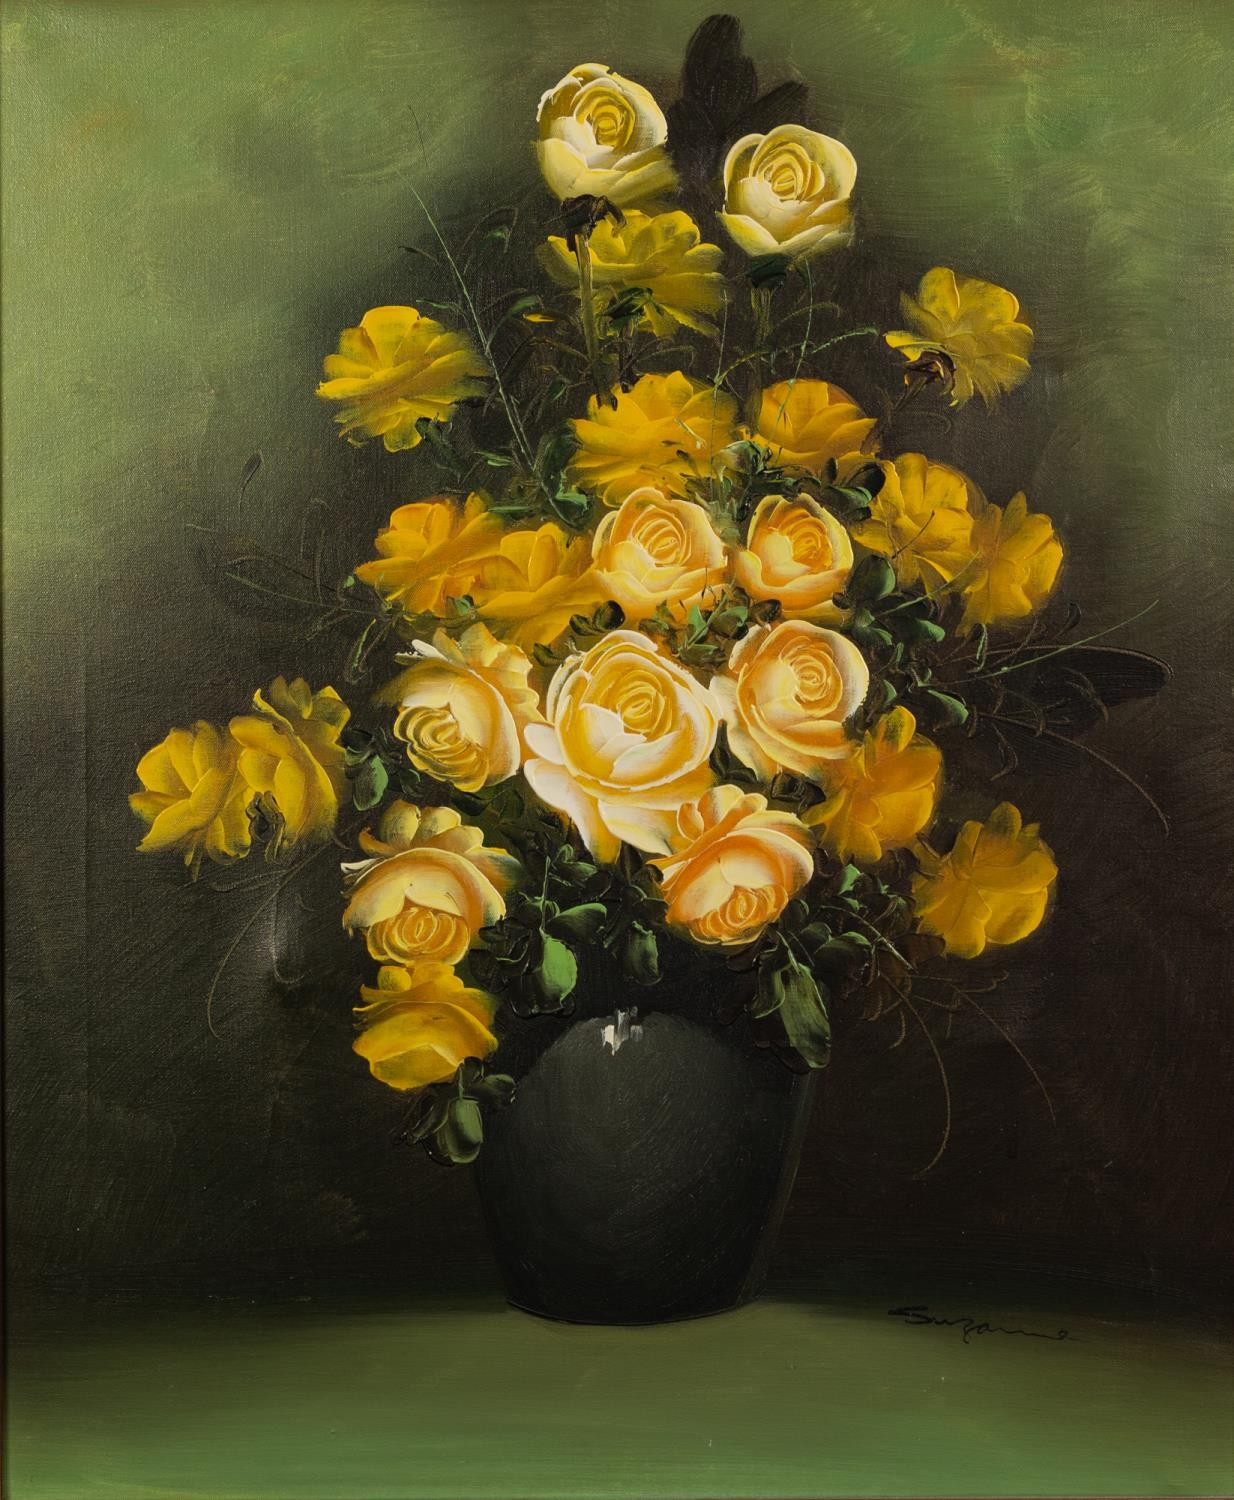 SUZANNE (MODERN) OIL ON CANVAS Vase of yellow roses Signed 24in x 19 1/2in (61 x 49.5cm) - Image 2 of 2